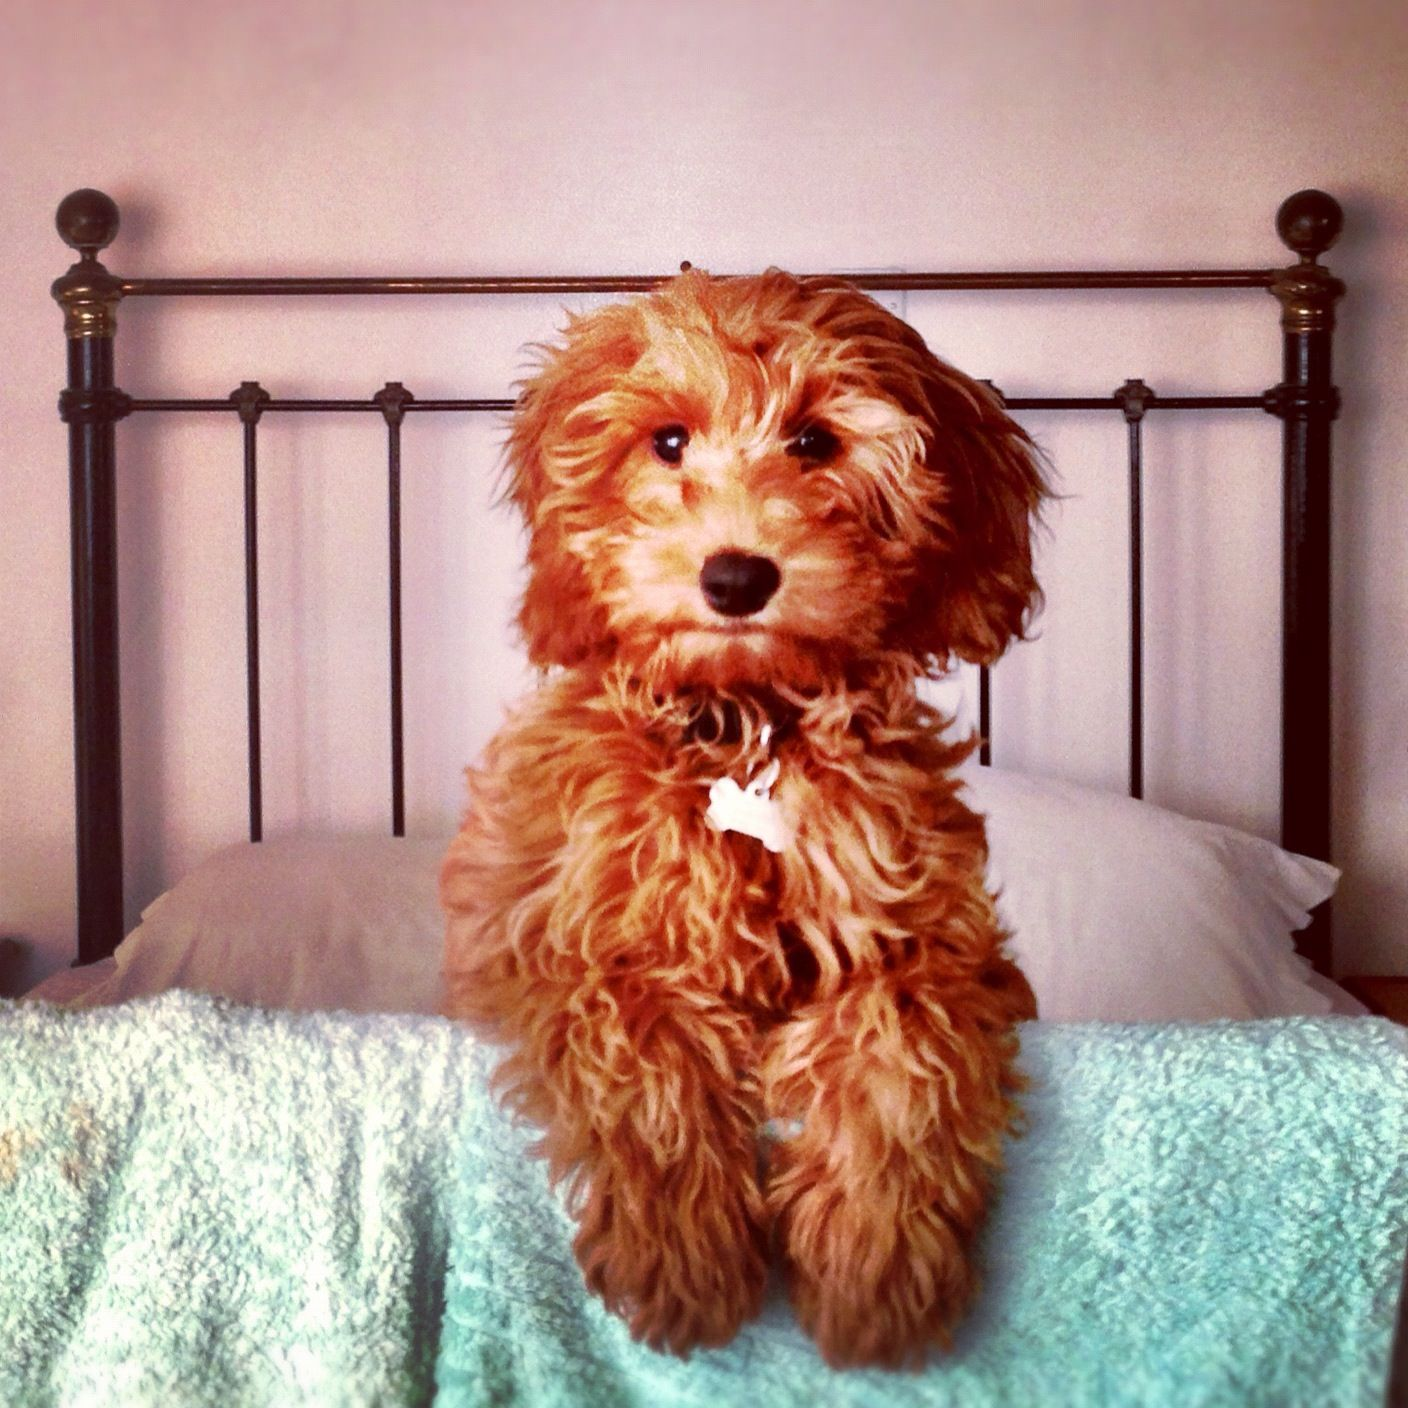 Australian Labradoodle, dog, puppy ... Labrador Retriever x Standard Poodle Mix Looks just like Goose!